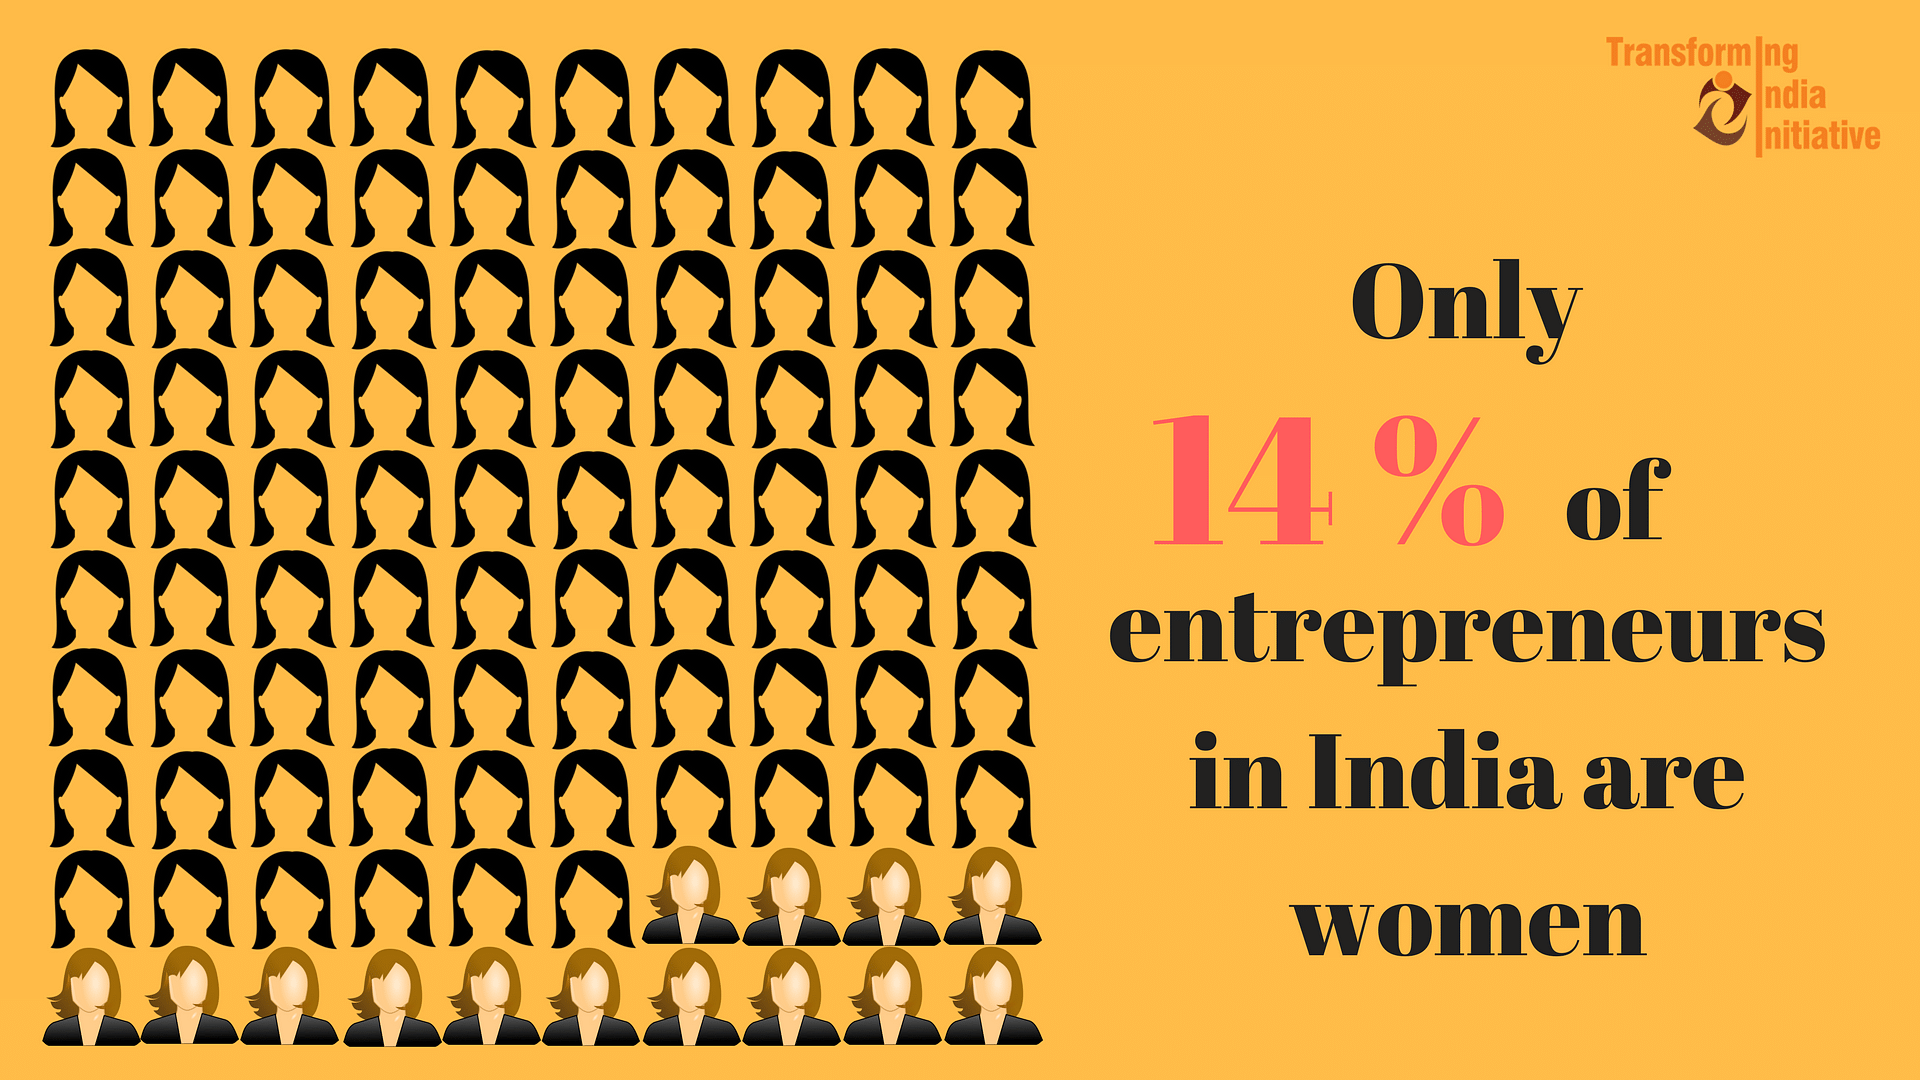 Women Entrepreneurs: The Roles They Play & the Challenges